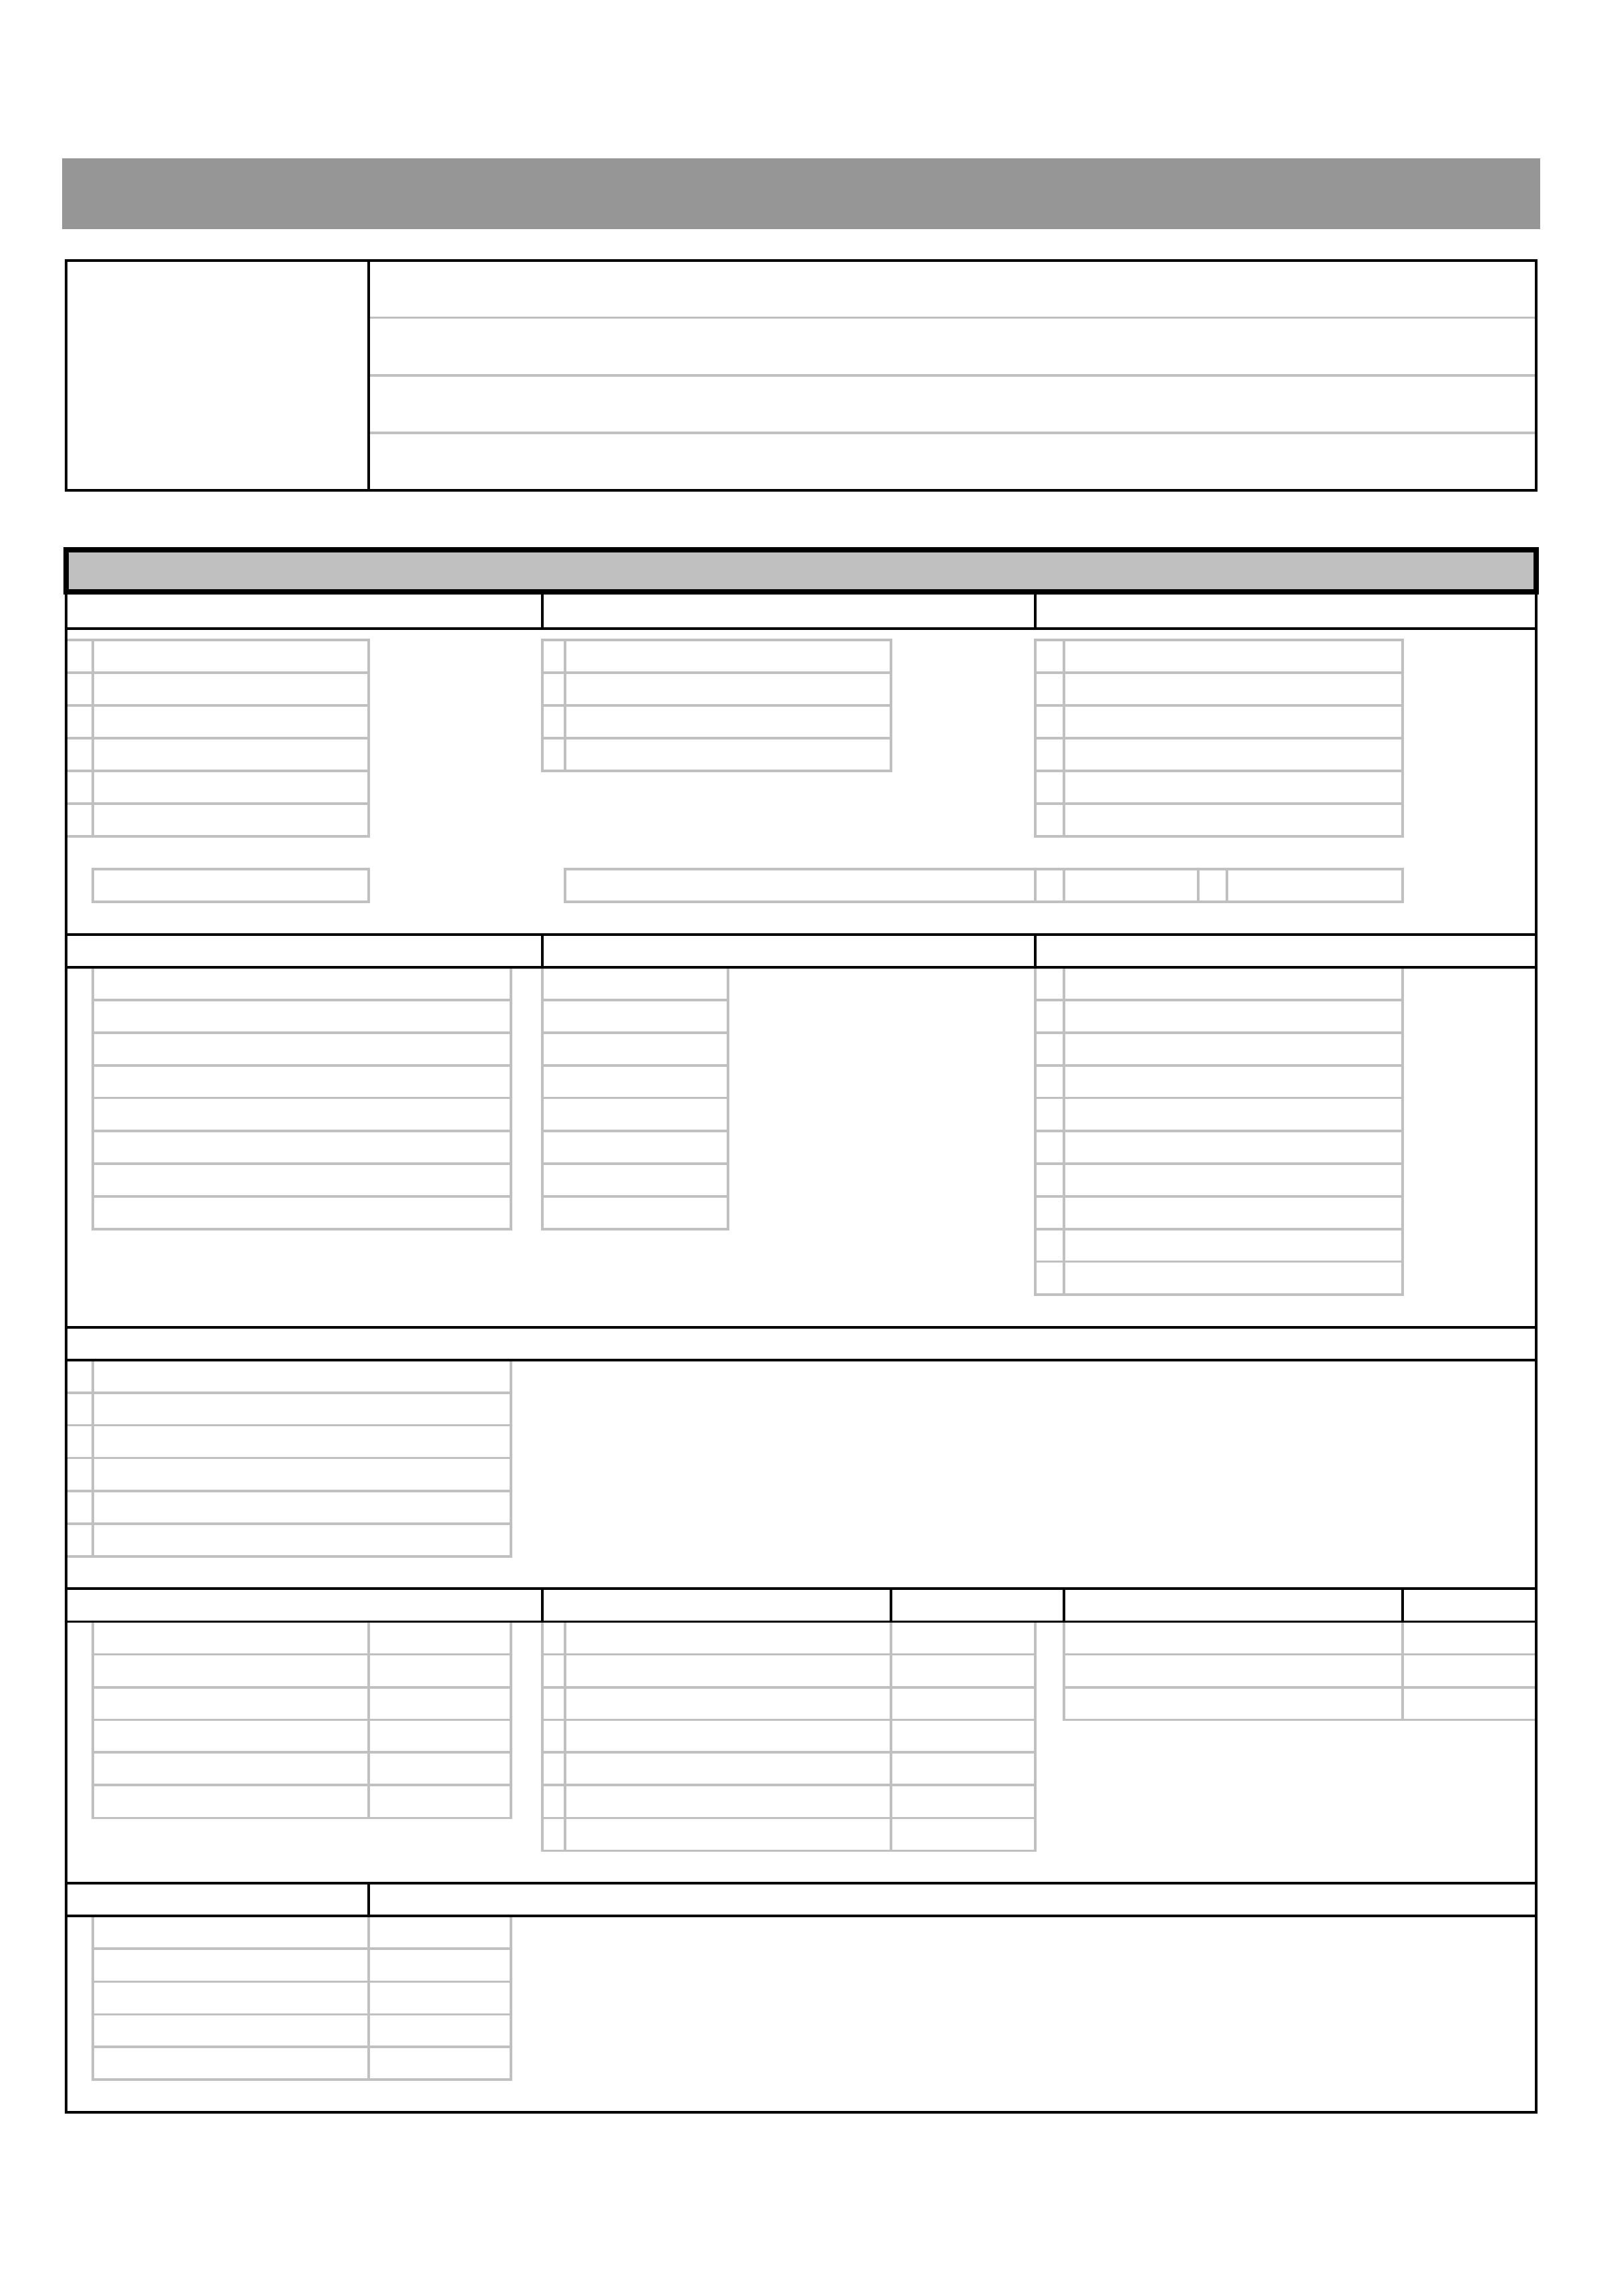 Home Evaluation Data Collection Worksheet Free Download